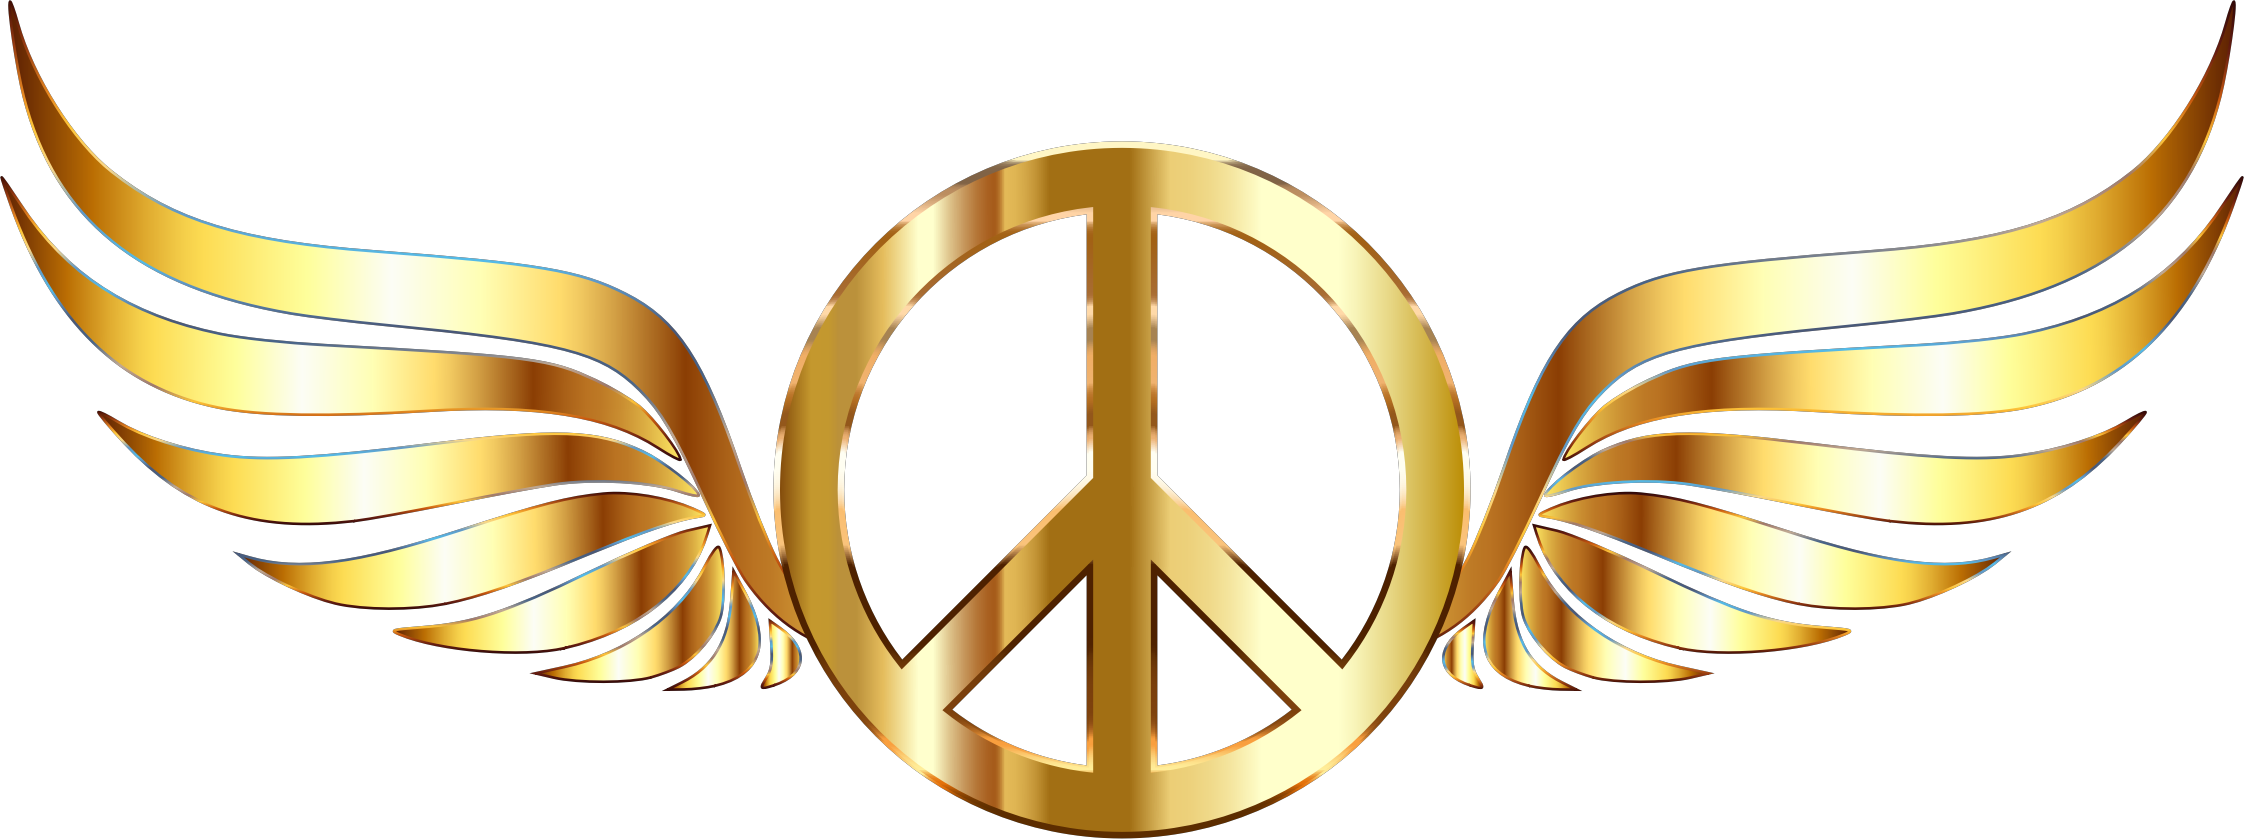 Gold peace sign wings. Wing clipart metal